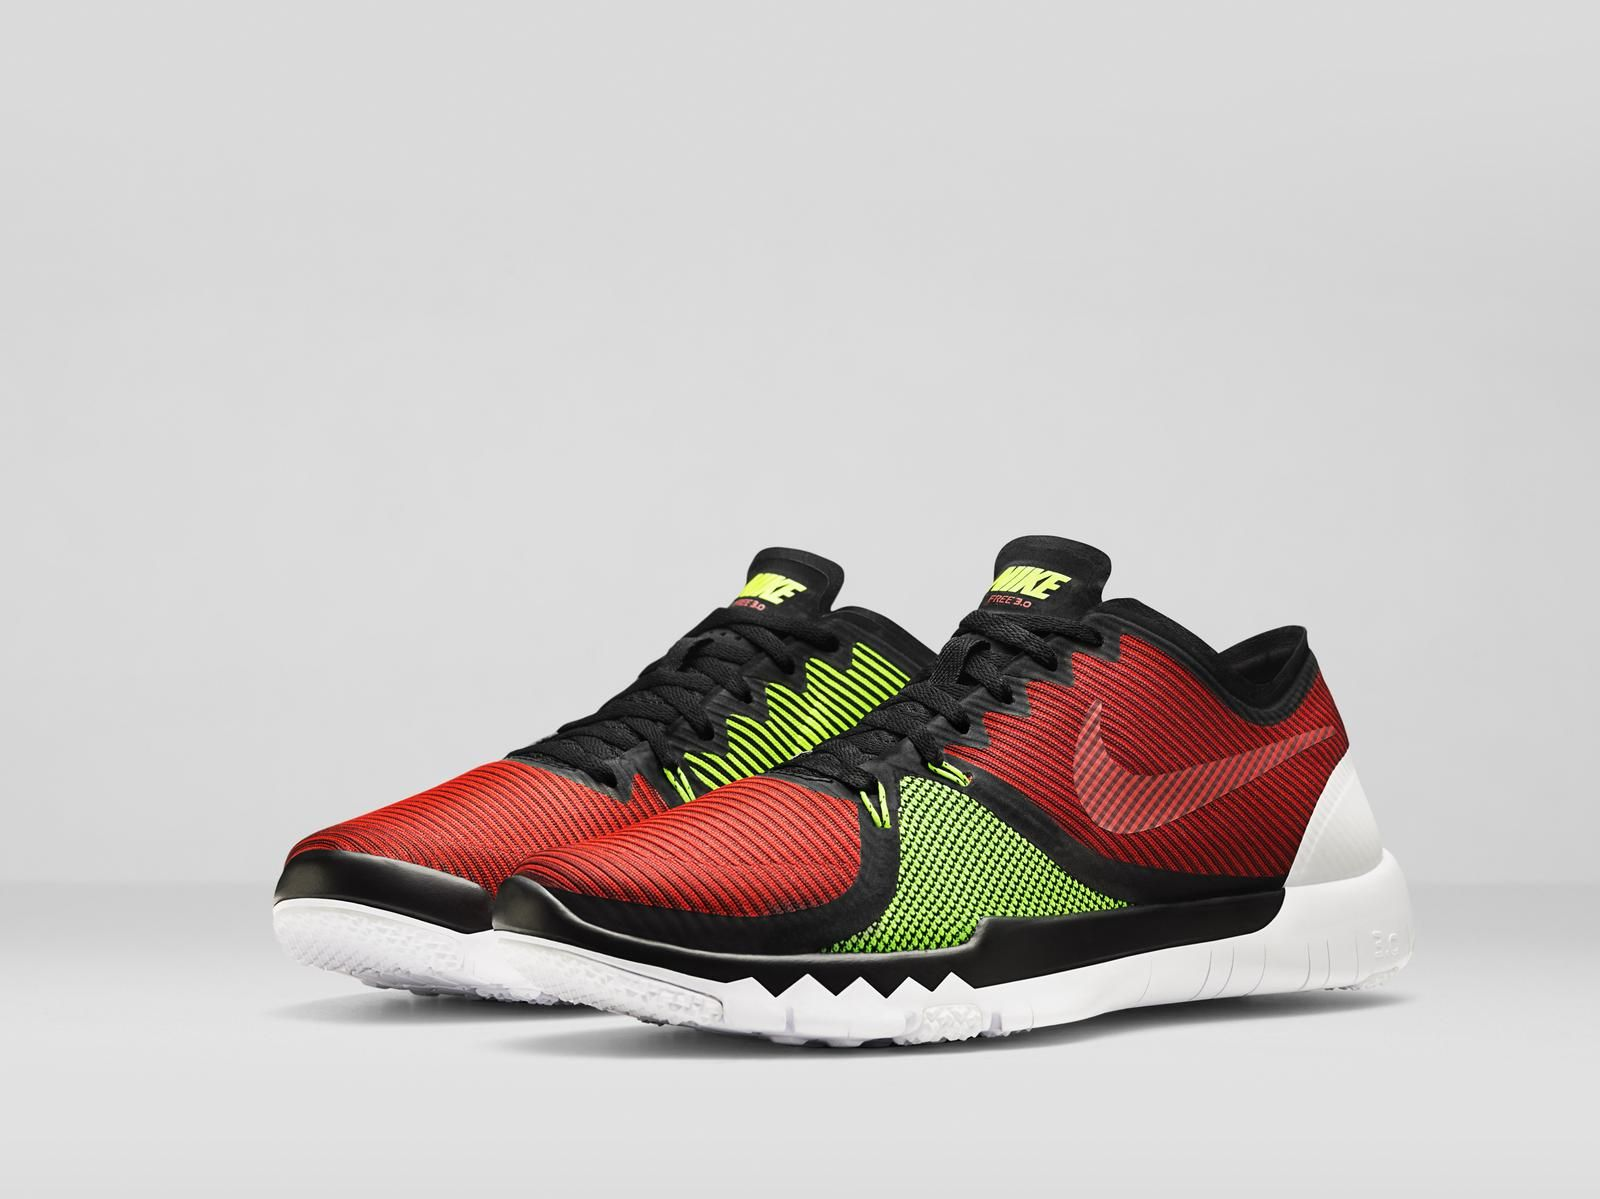 Nike News - Nike Free Trainer 3.0 Provides Directional Flexibility and Strength